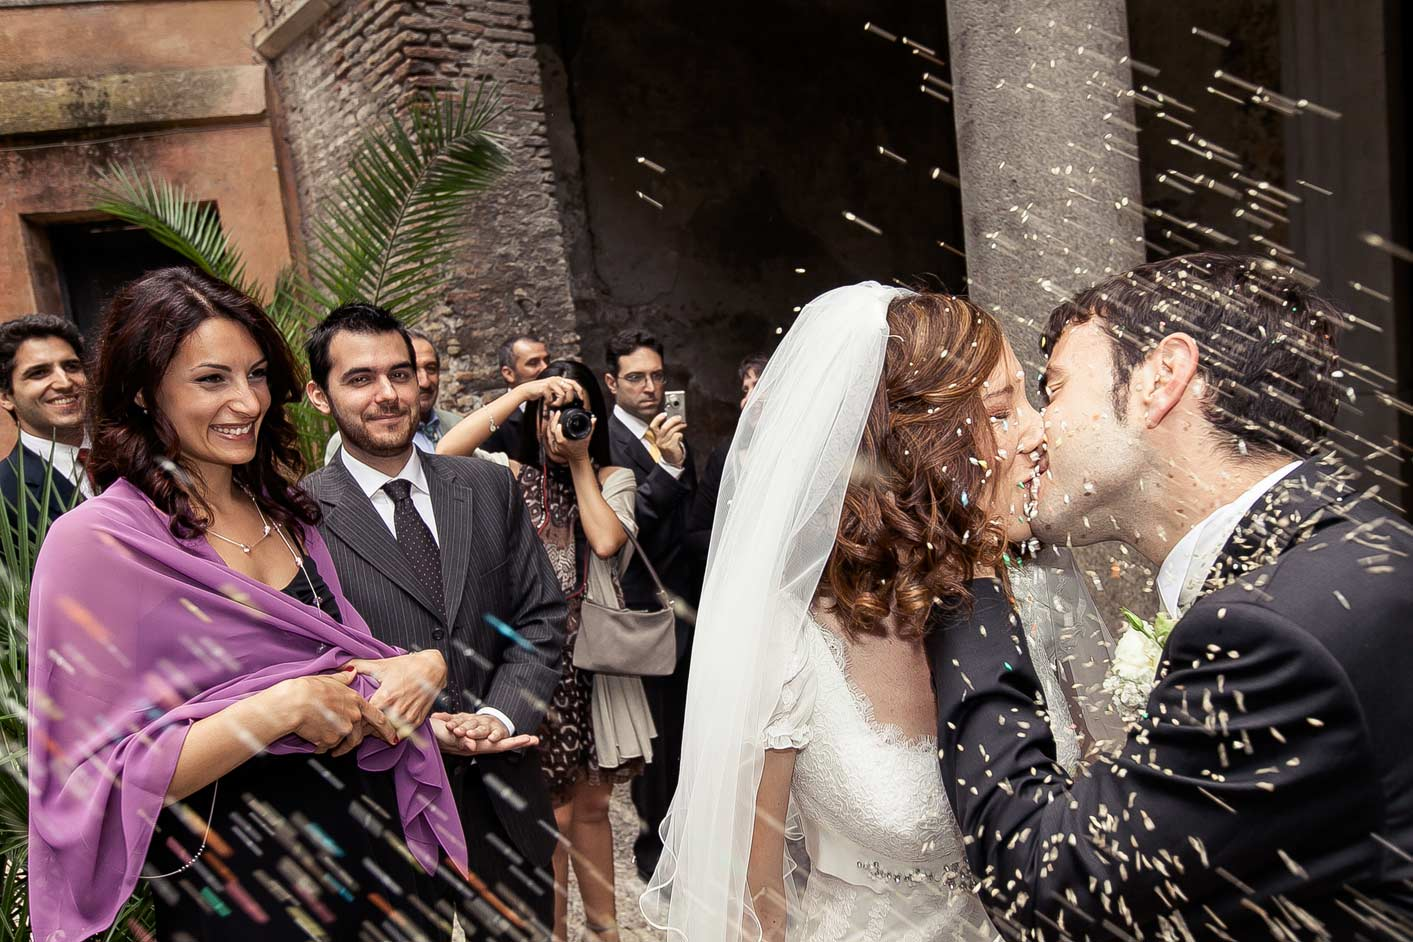 Wedding-Photographer-in-Italy-Reportage-Wedding-Photography-1-Ceremony